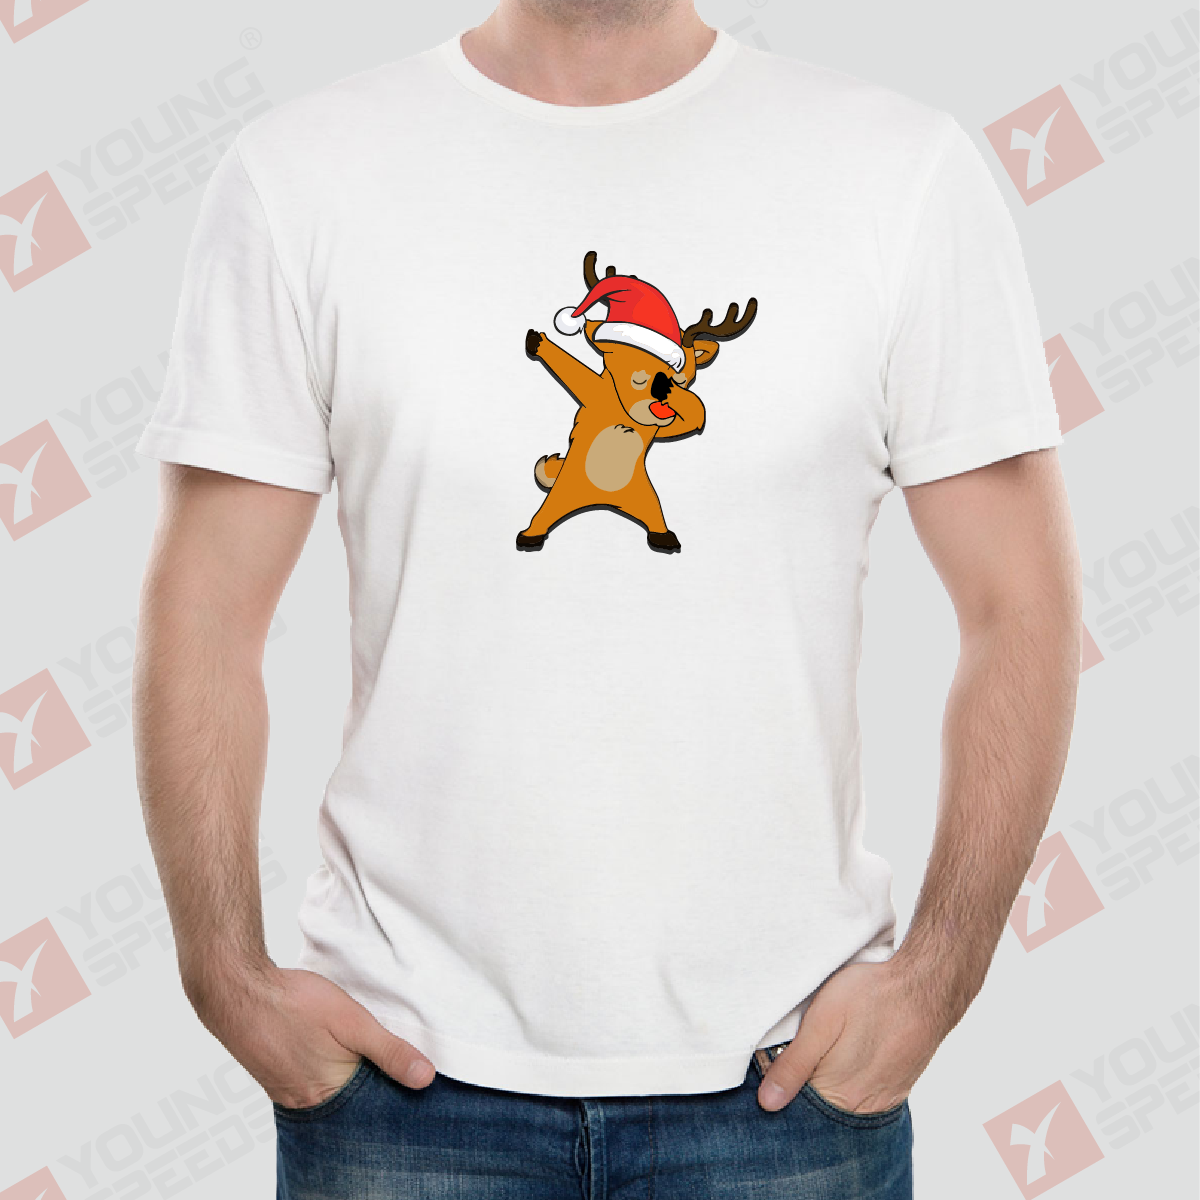 Dabbing Reindeer Funny Christmas Shirts Made in USA - YoungSpeeds